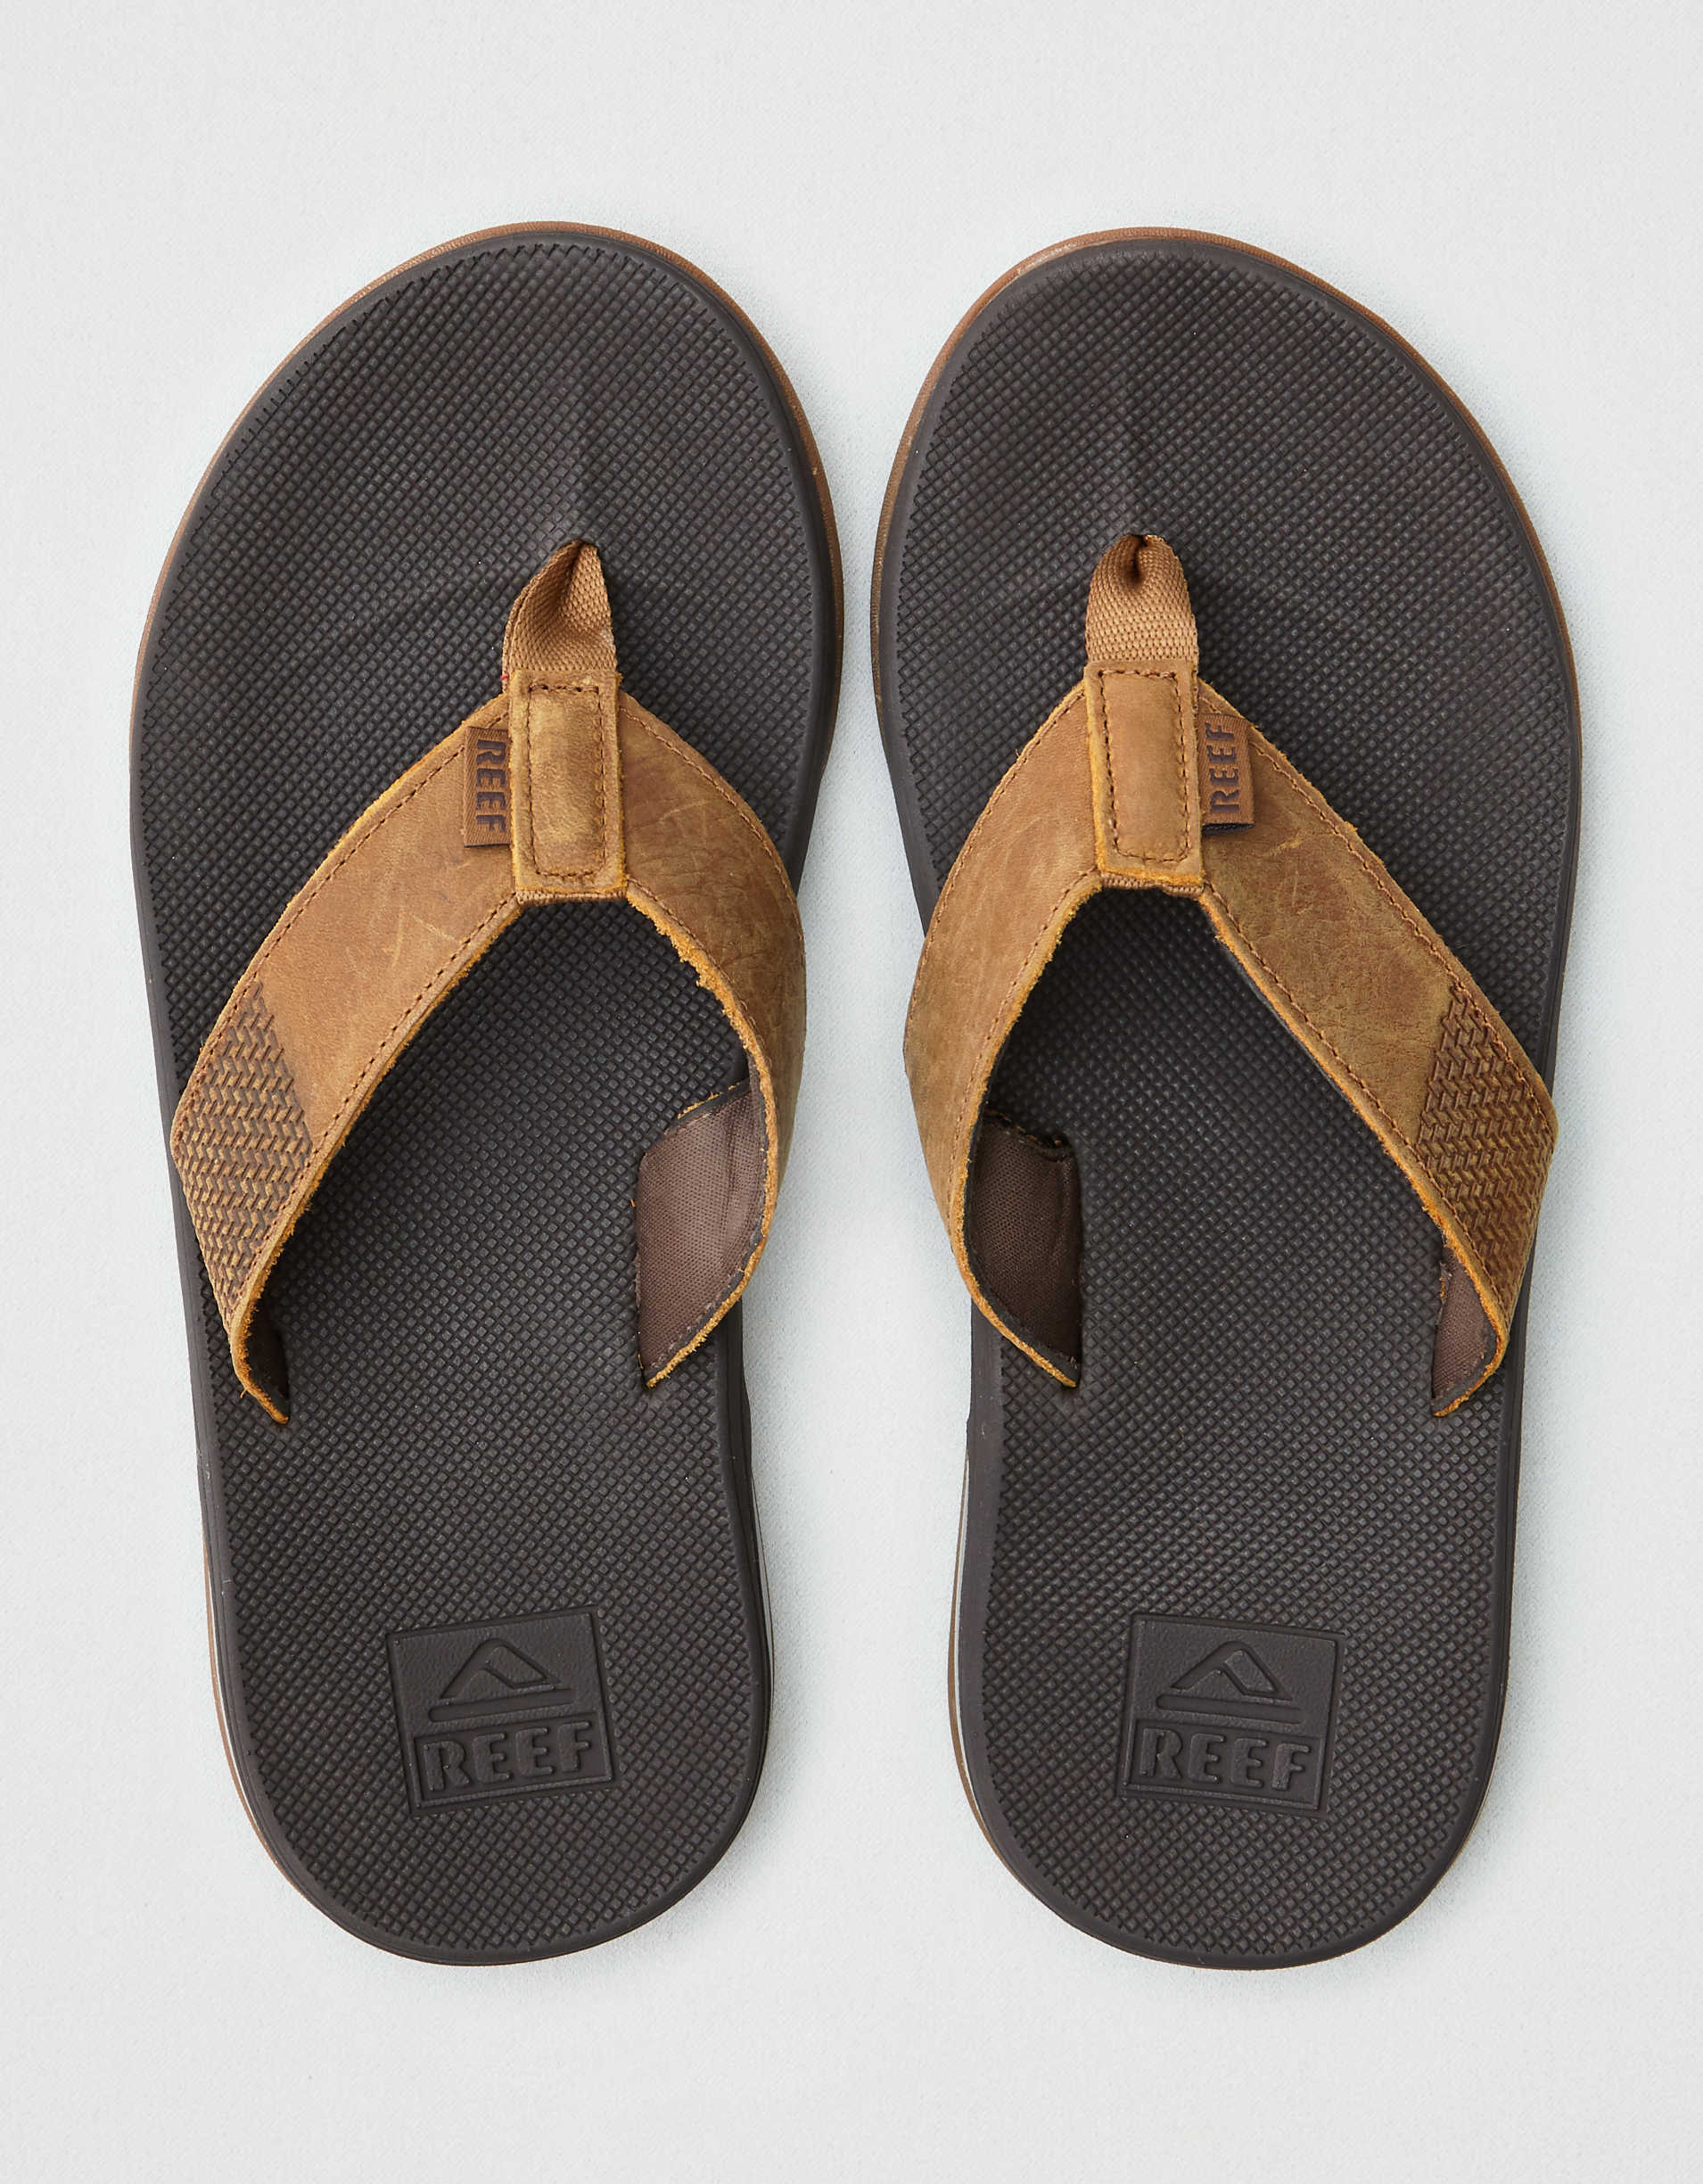 Reef Men's Fanning Low Leather Flip Flops